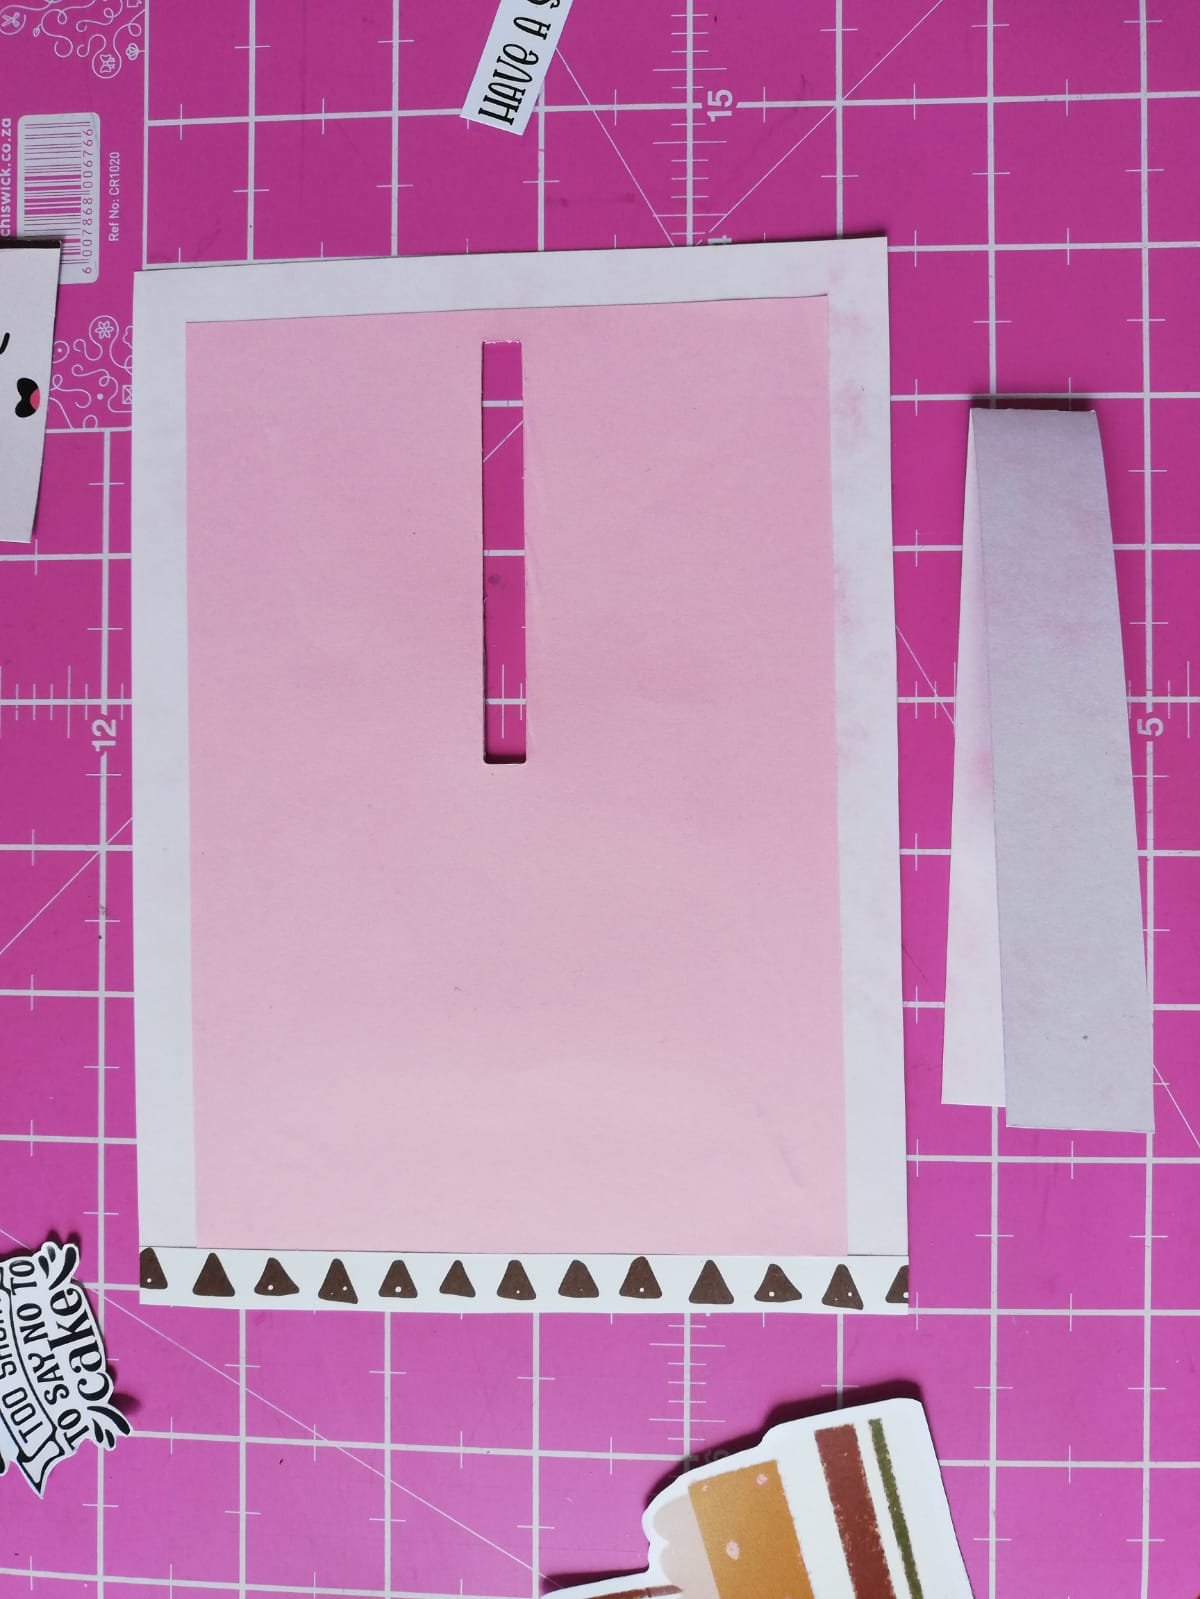 Slit cut out and paper strip folded